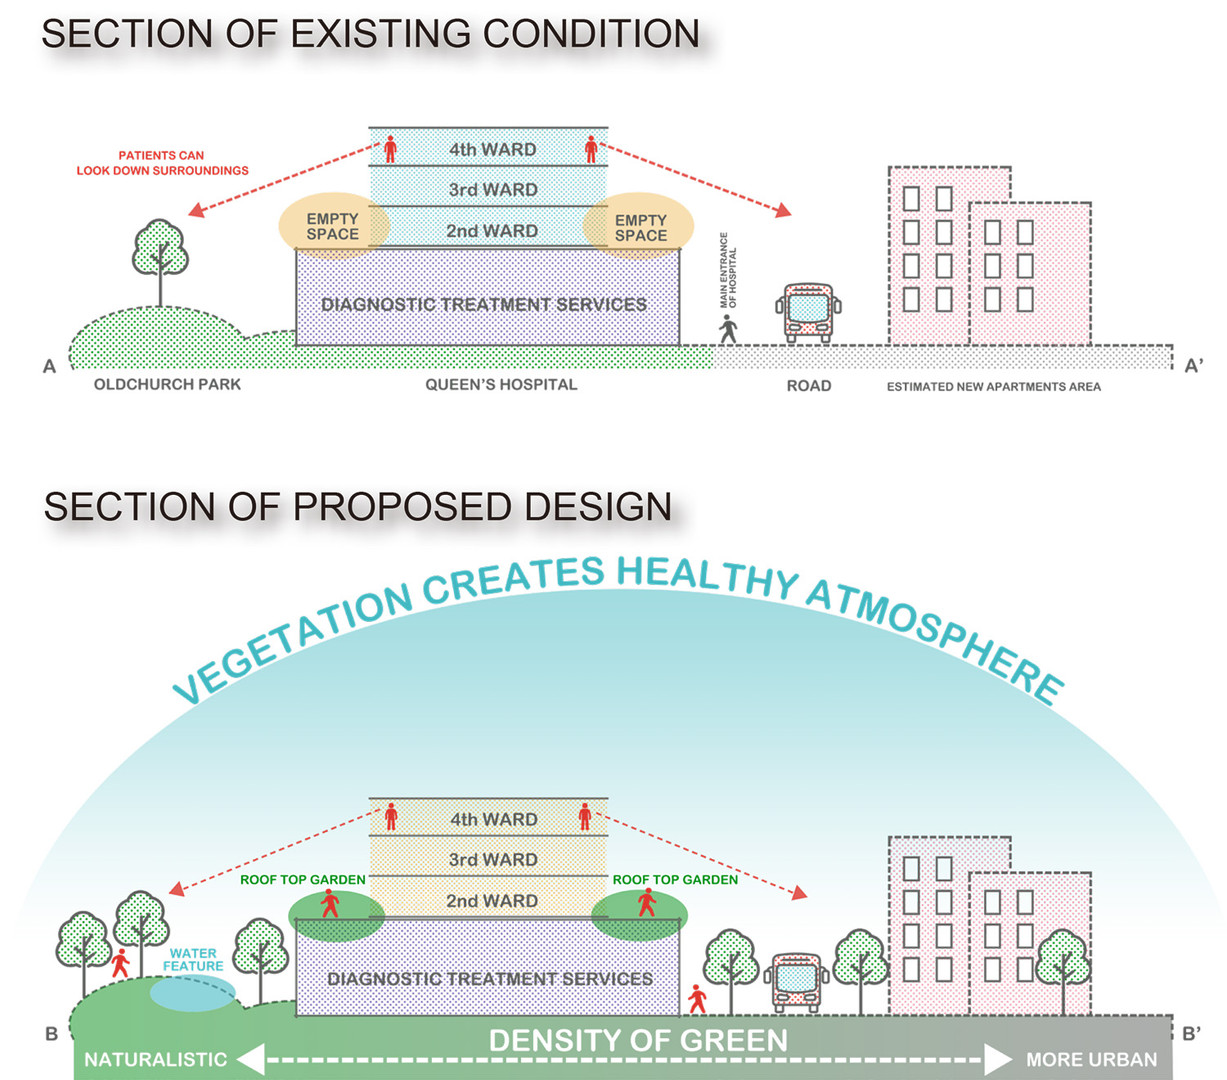 EXISTING CONDITION AND PROPOSED DESIGN